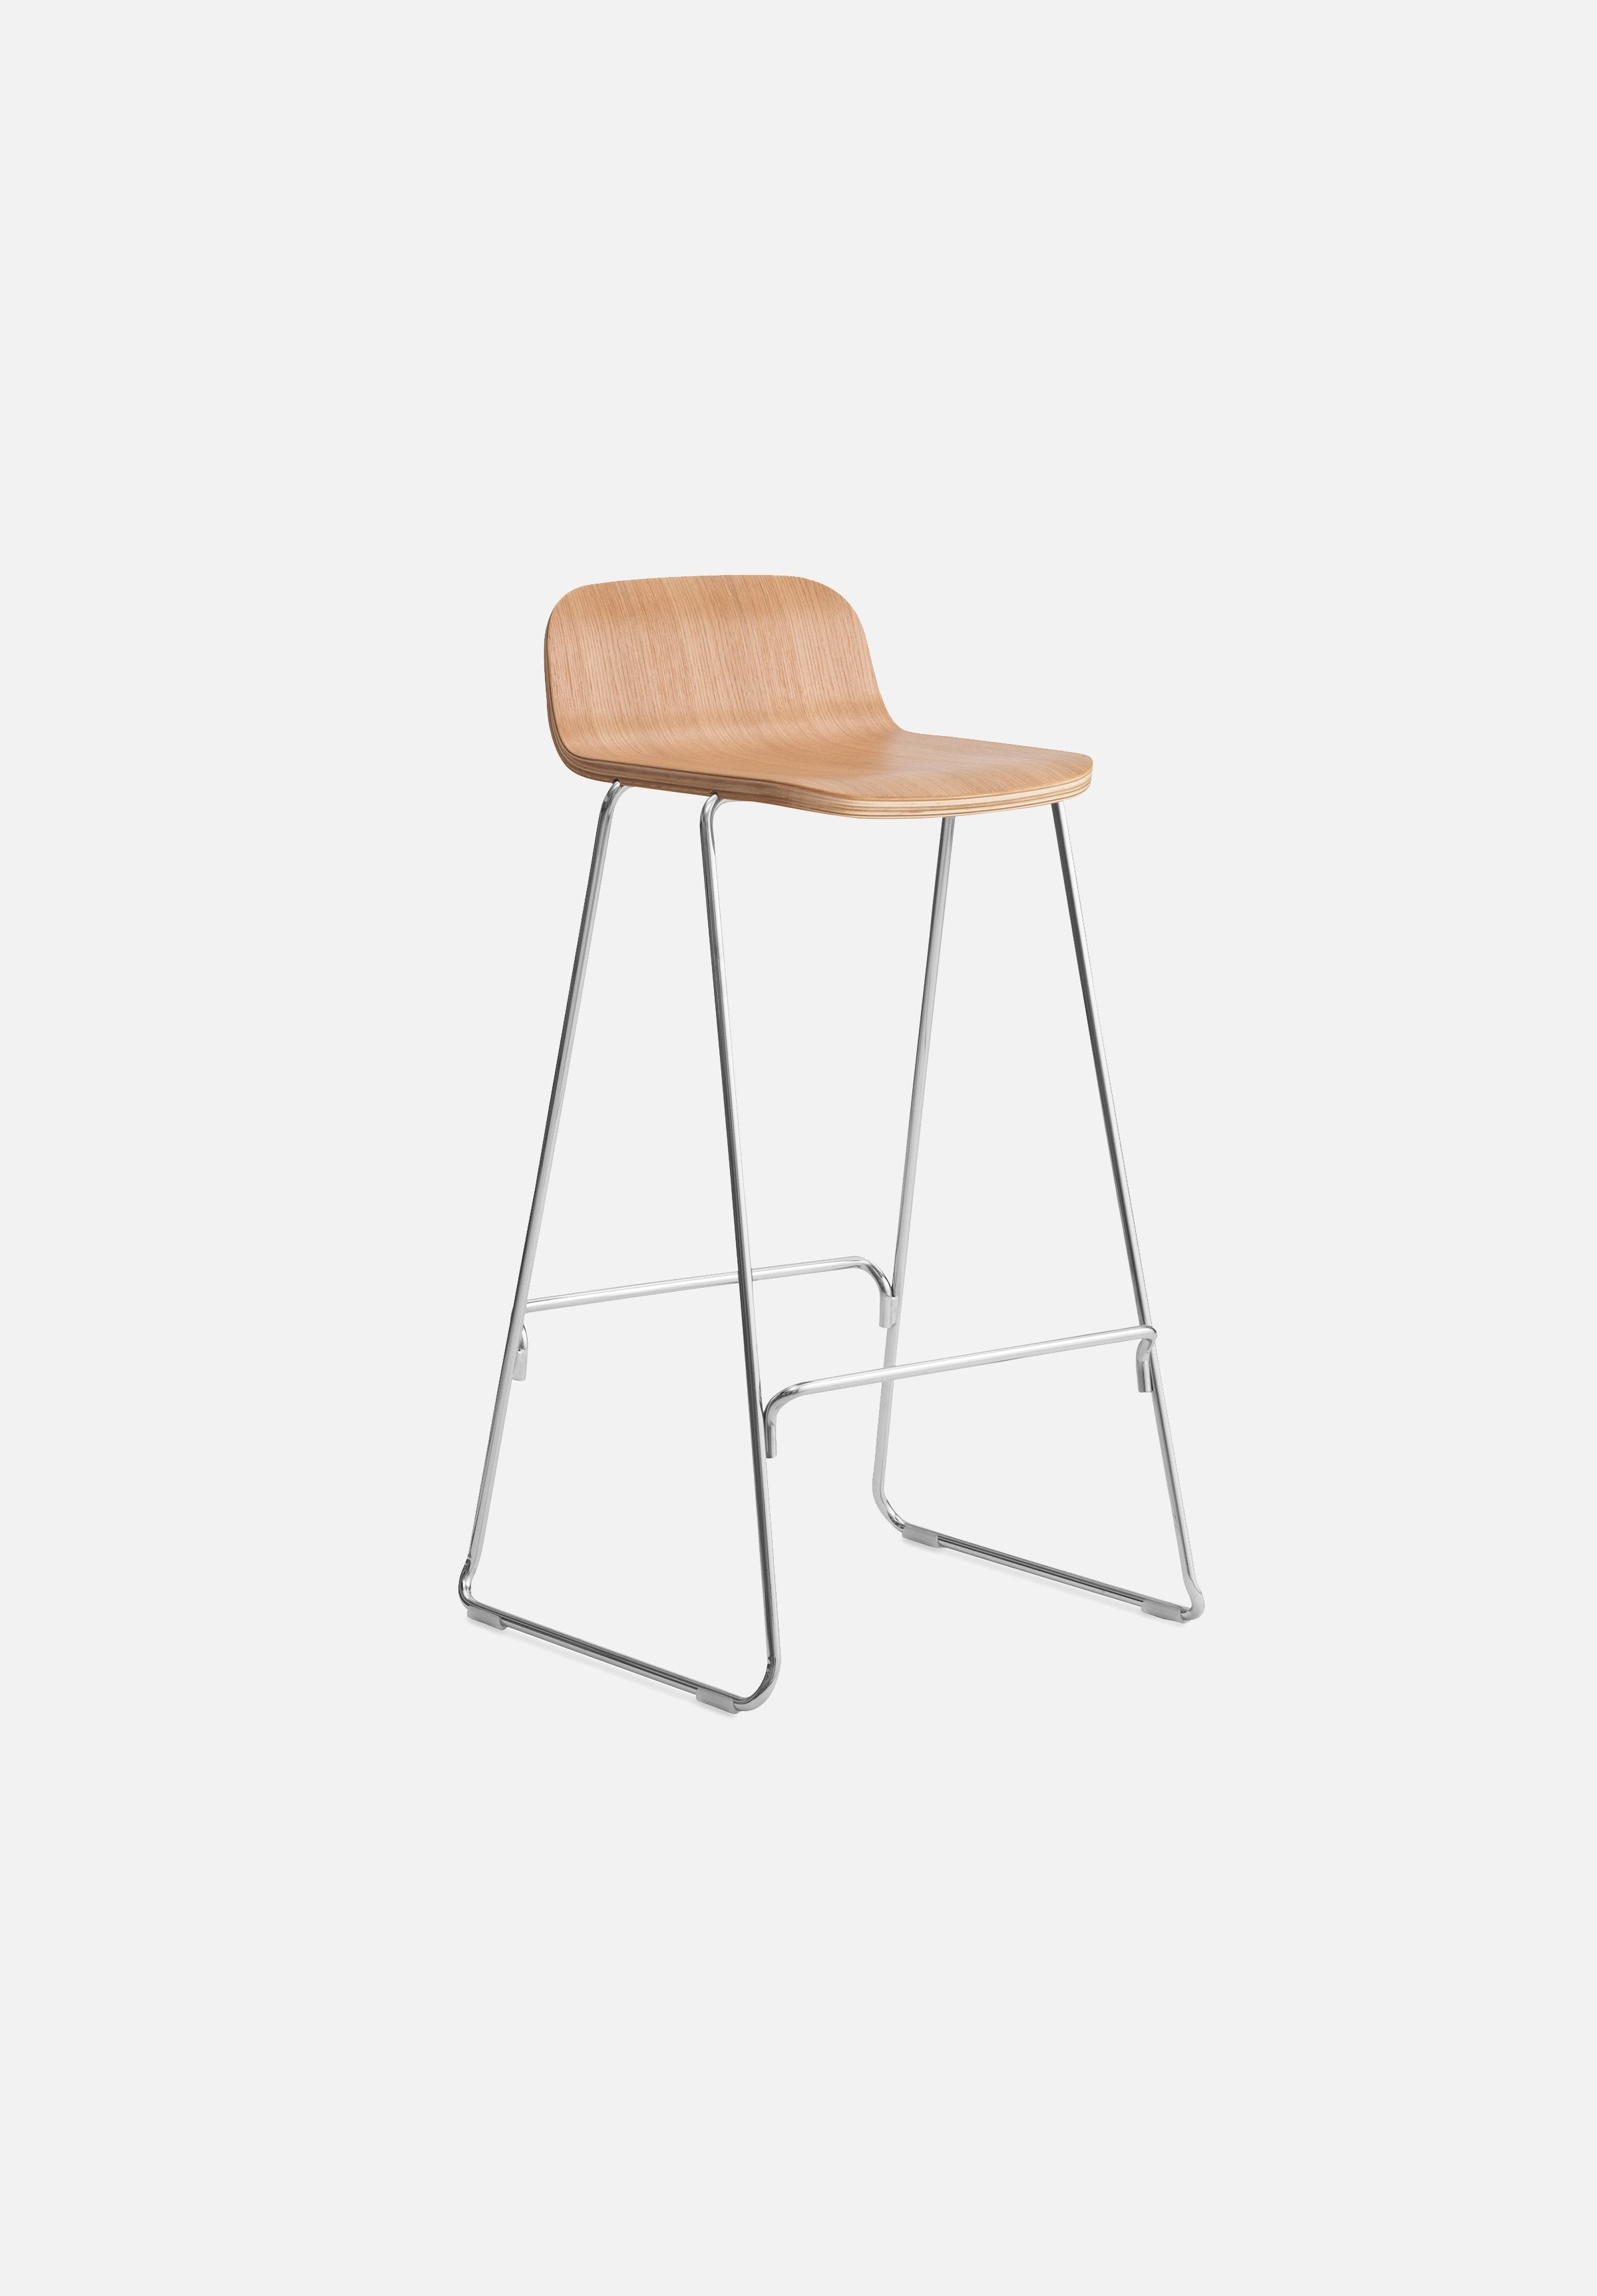 Just Stool-Iskos-Berlin-Normann Copenhagen-Oak-75cm-With-Average